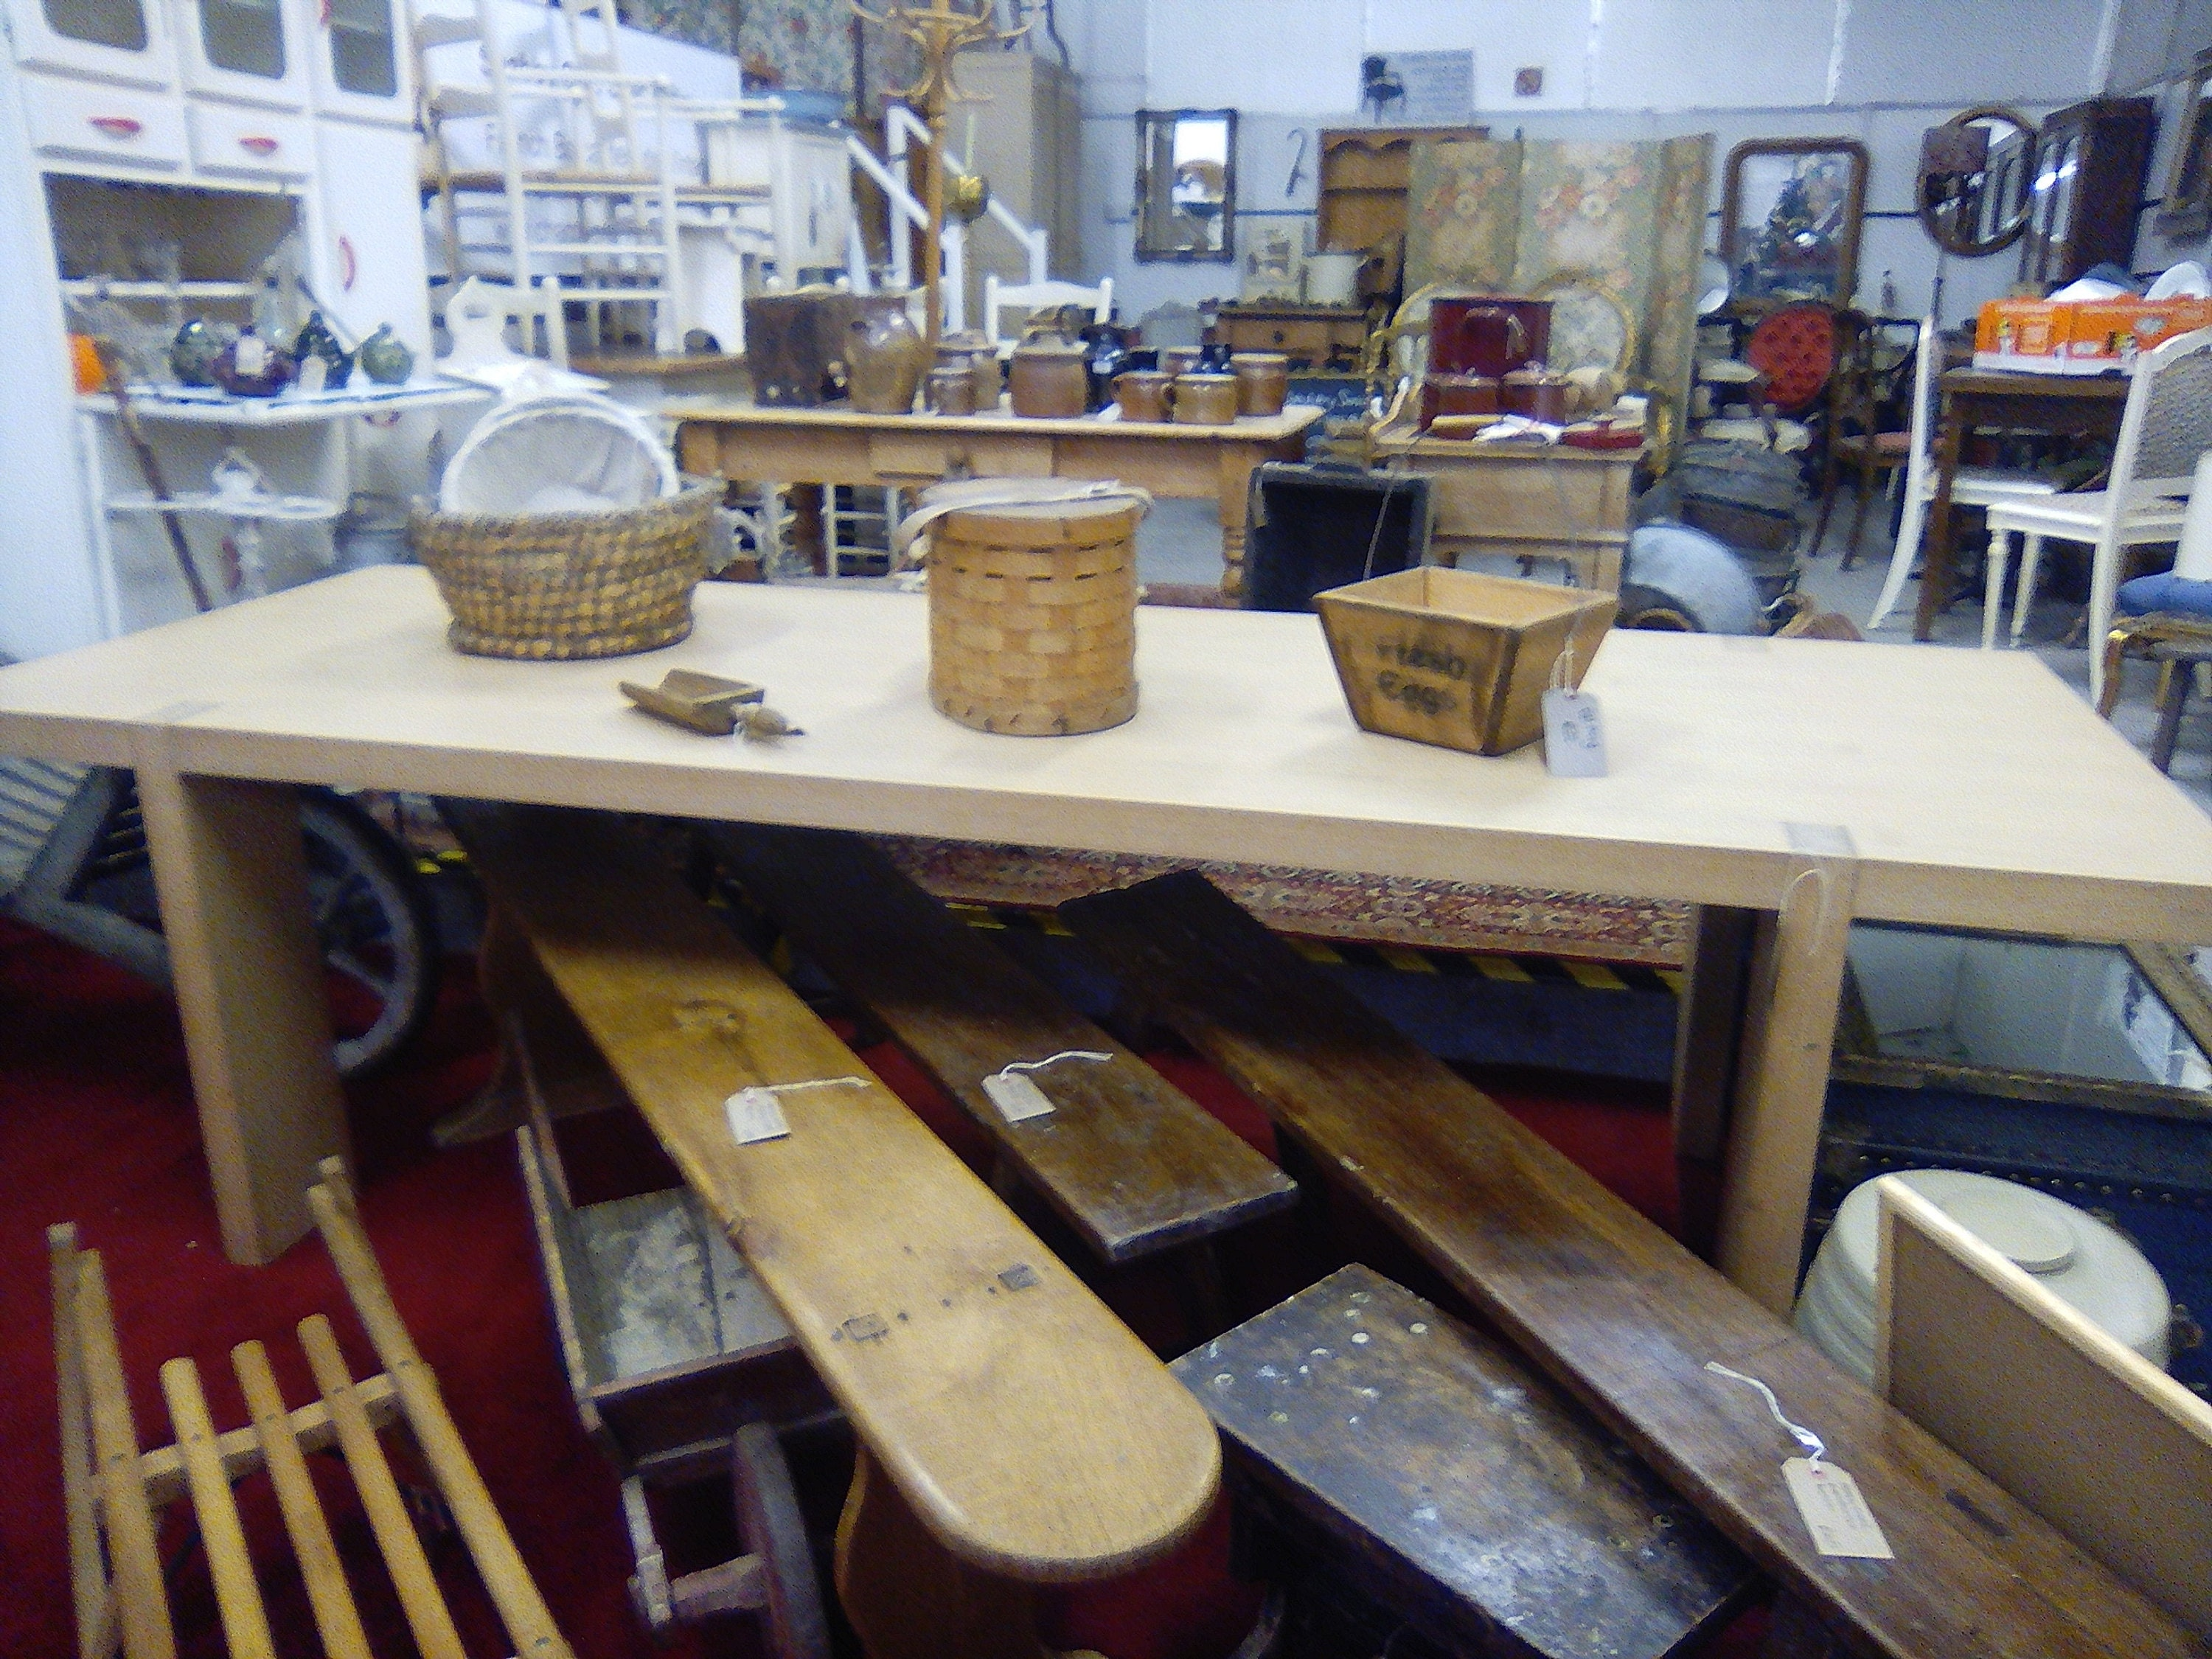 The shop at Bromsberrow filled with fabulous furniture and knick-knacks